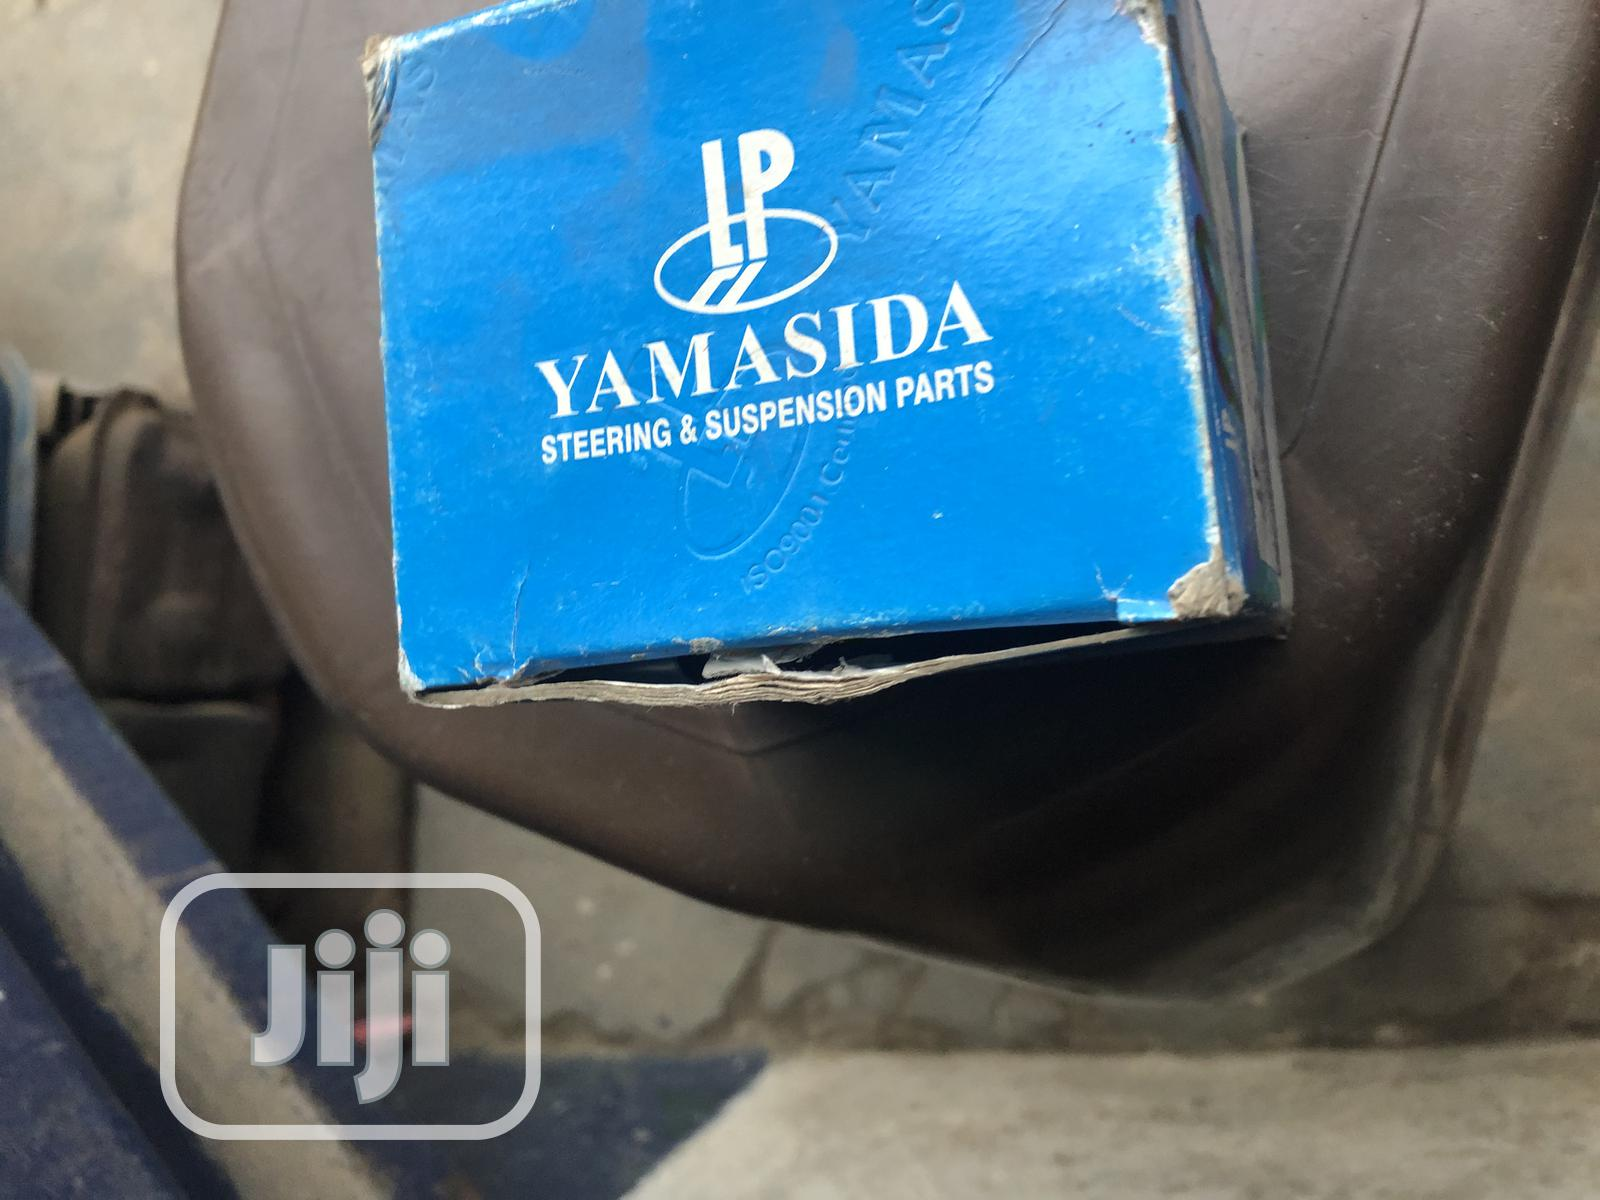 Honda Ball Joint For Honda Accord And Crv | Vehicle Parts & Accessories for sale in Lagos State, Nigeria